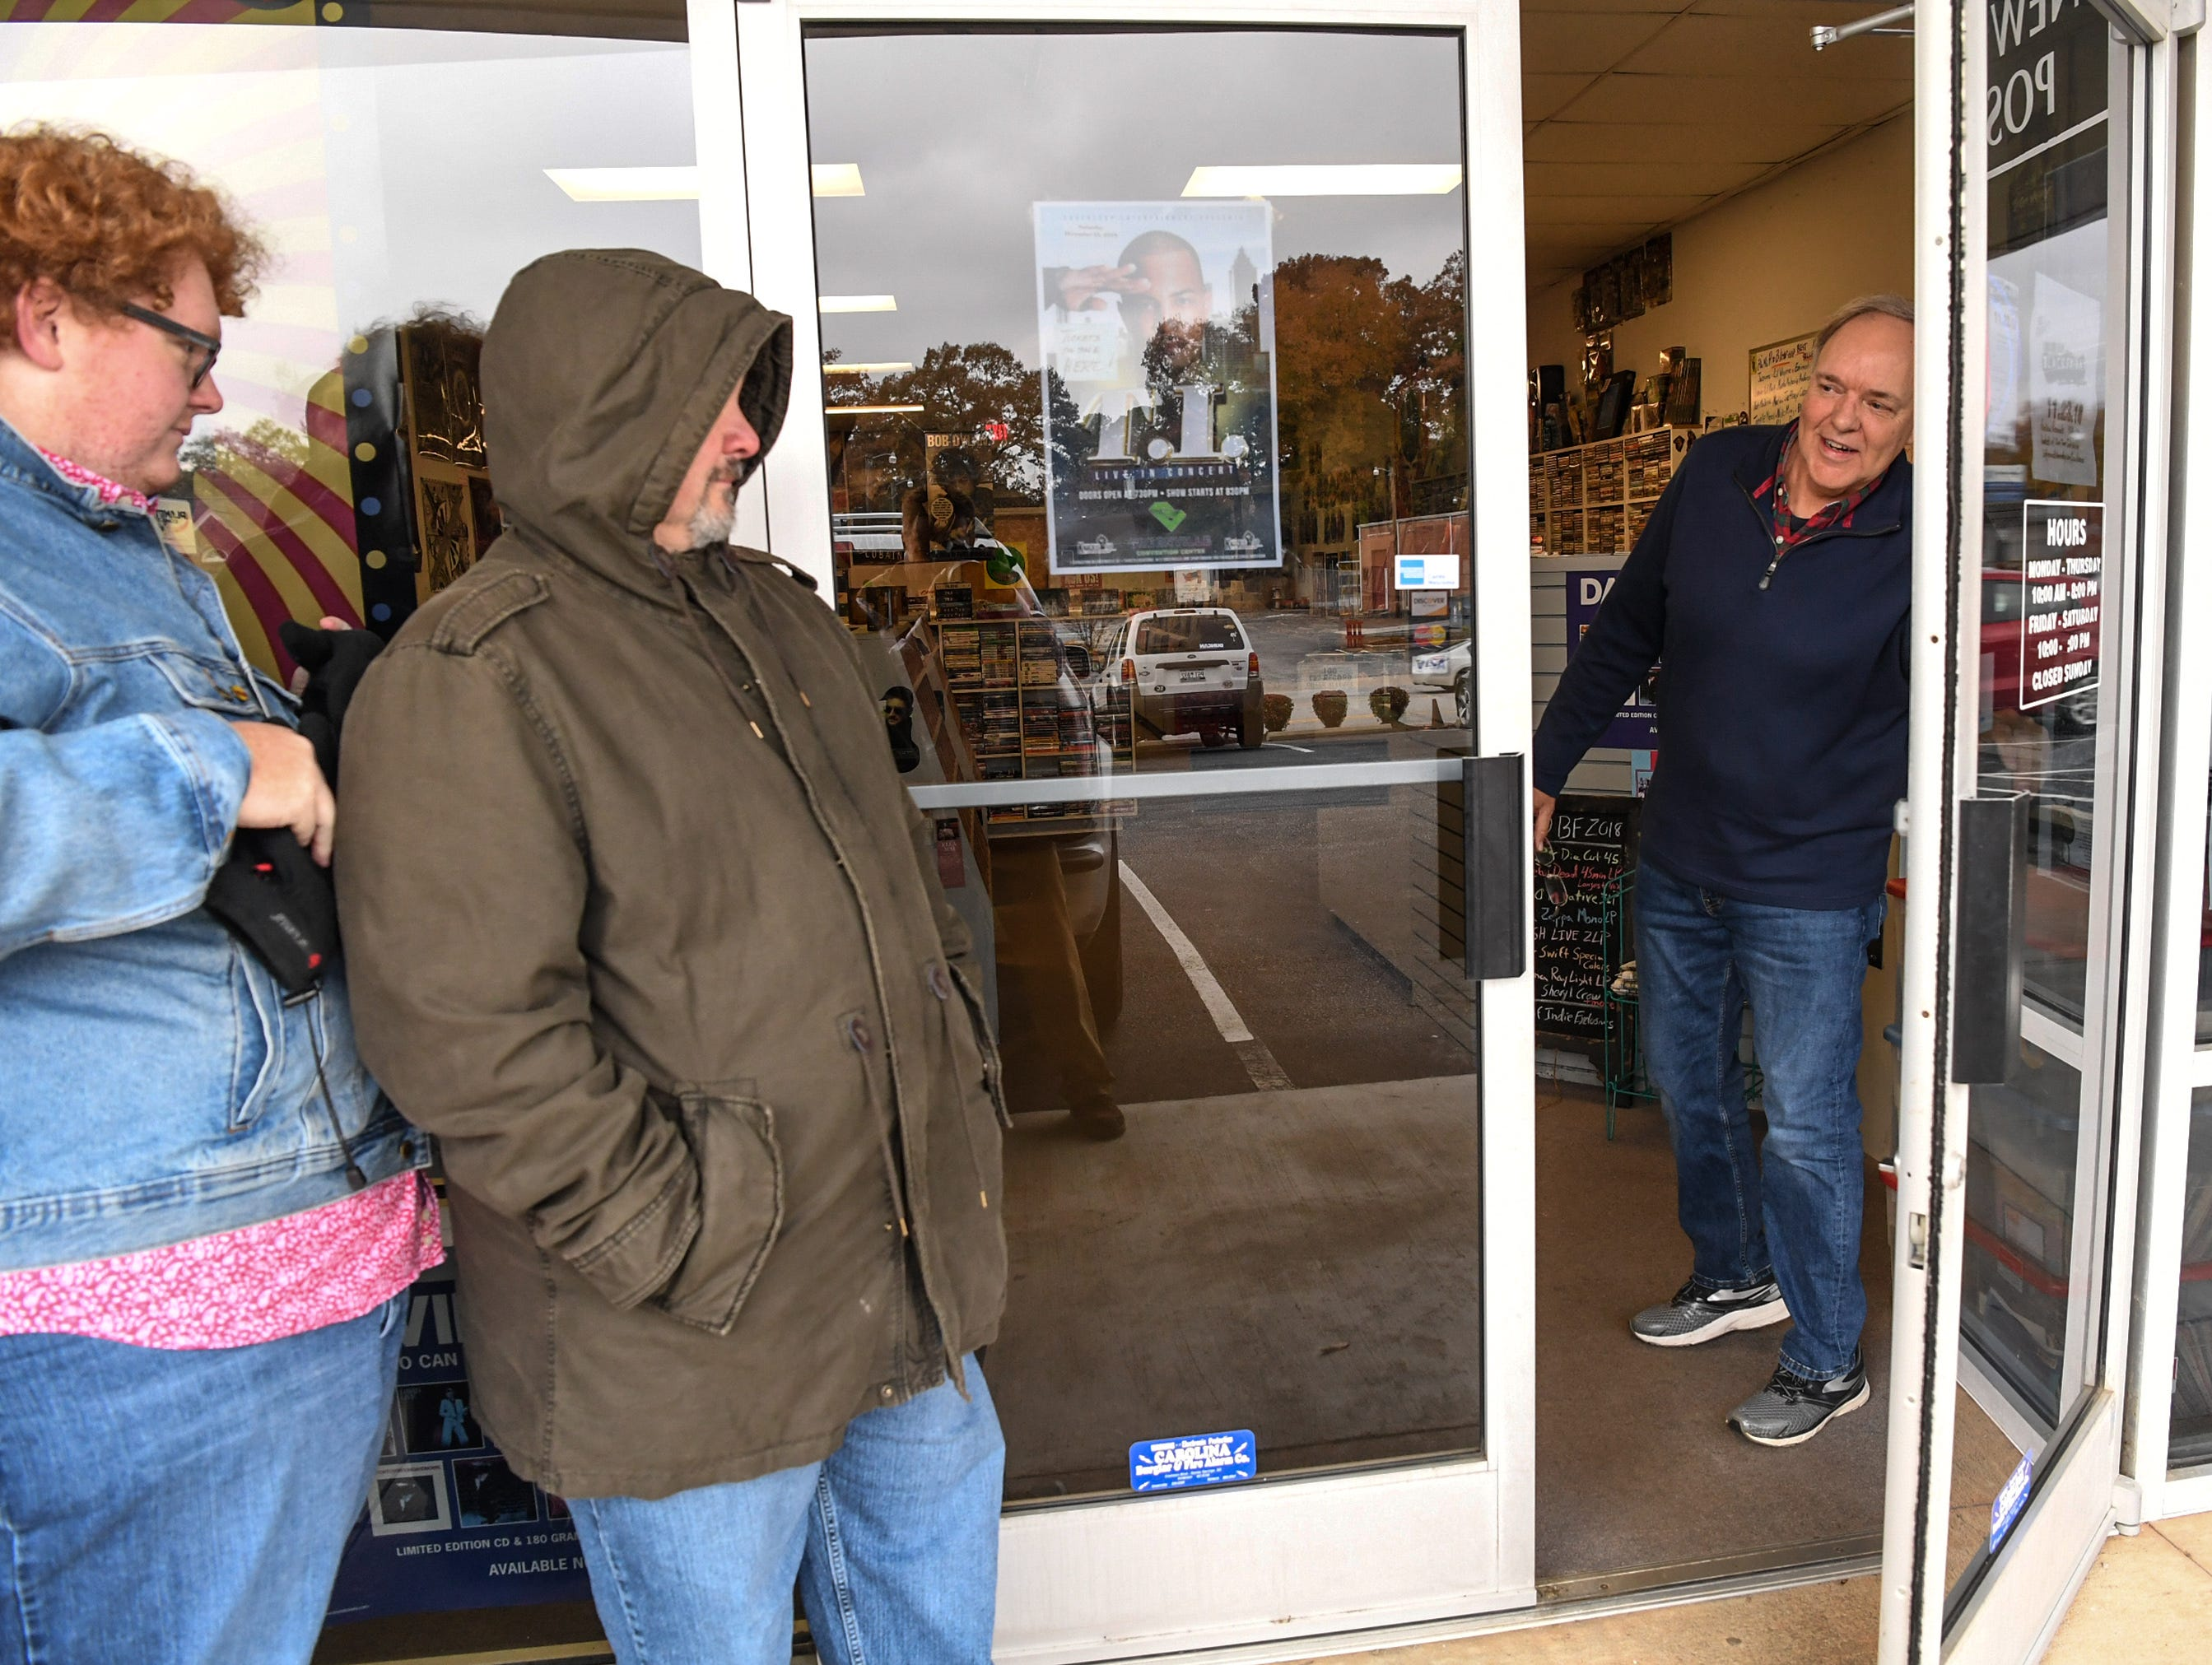 Owner Mark Hembree, right, opens the door for customers Coleman Grimes, left, and his father Robbie Grimes, middle, of Powdersville, in line at Rainbow Records for Record Store Day on Black Friday in Anderson on Friday, November 23, 2018.